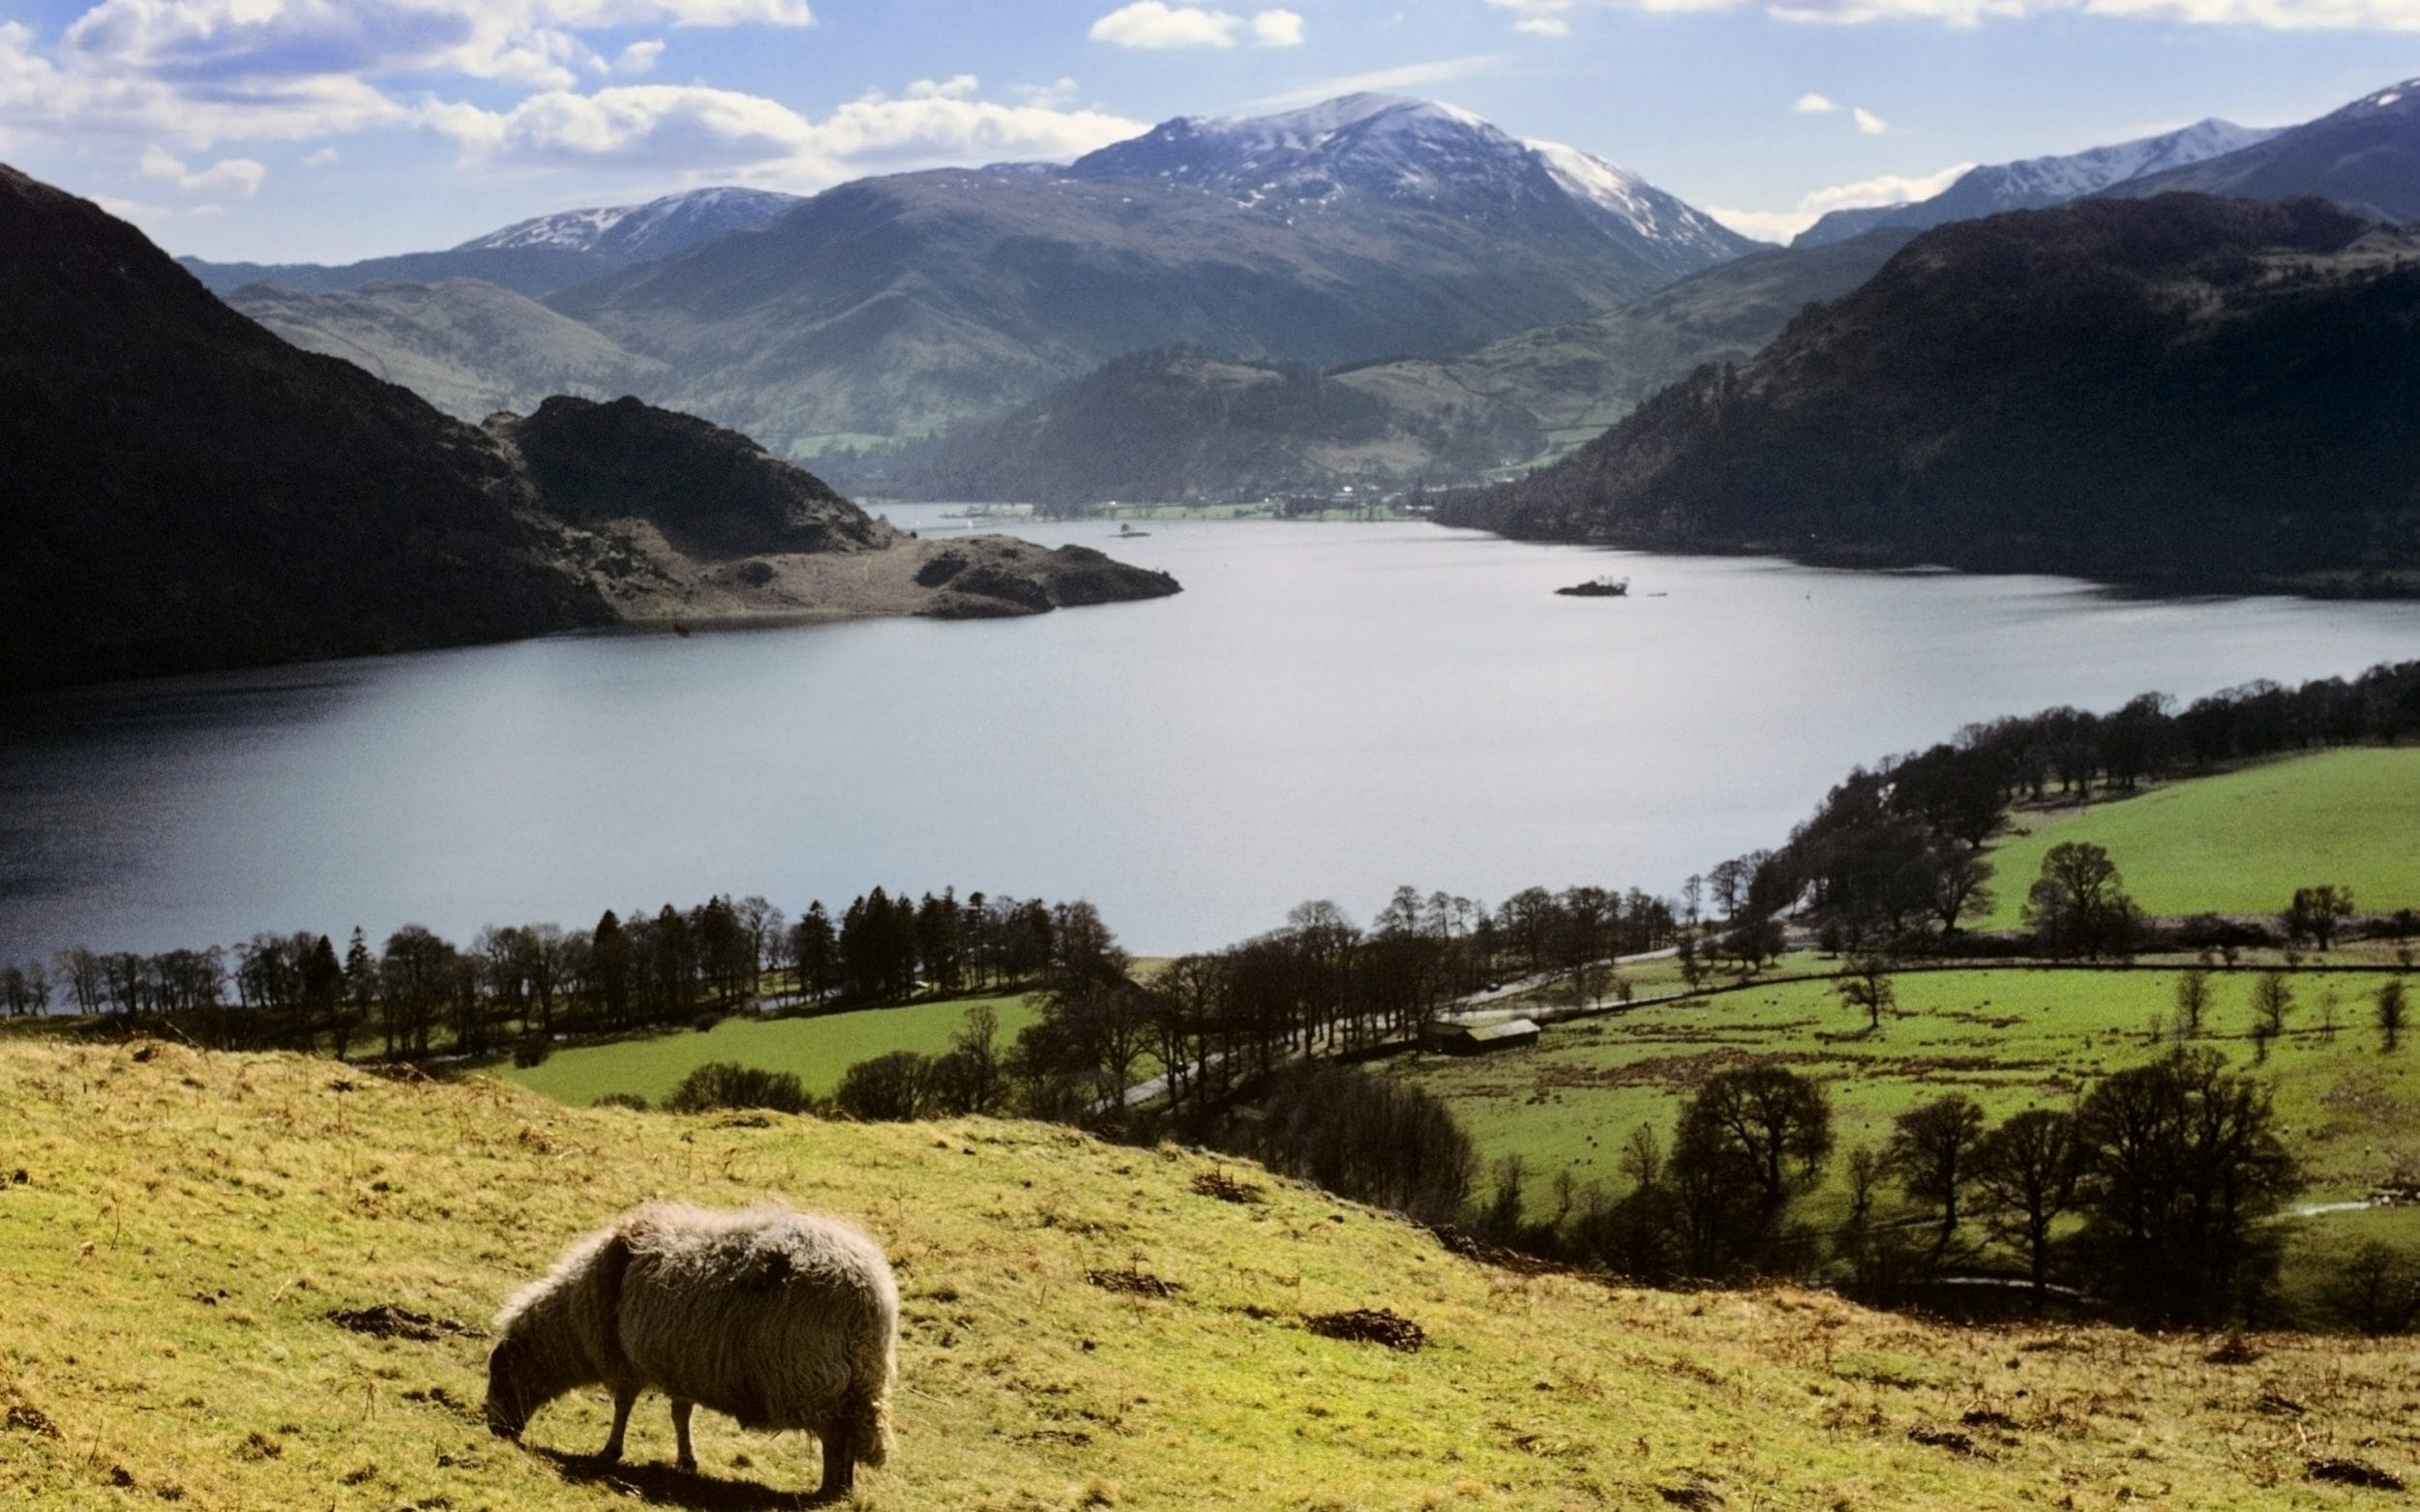 The incident happened near Ullswater in the Lake District